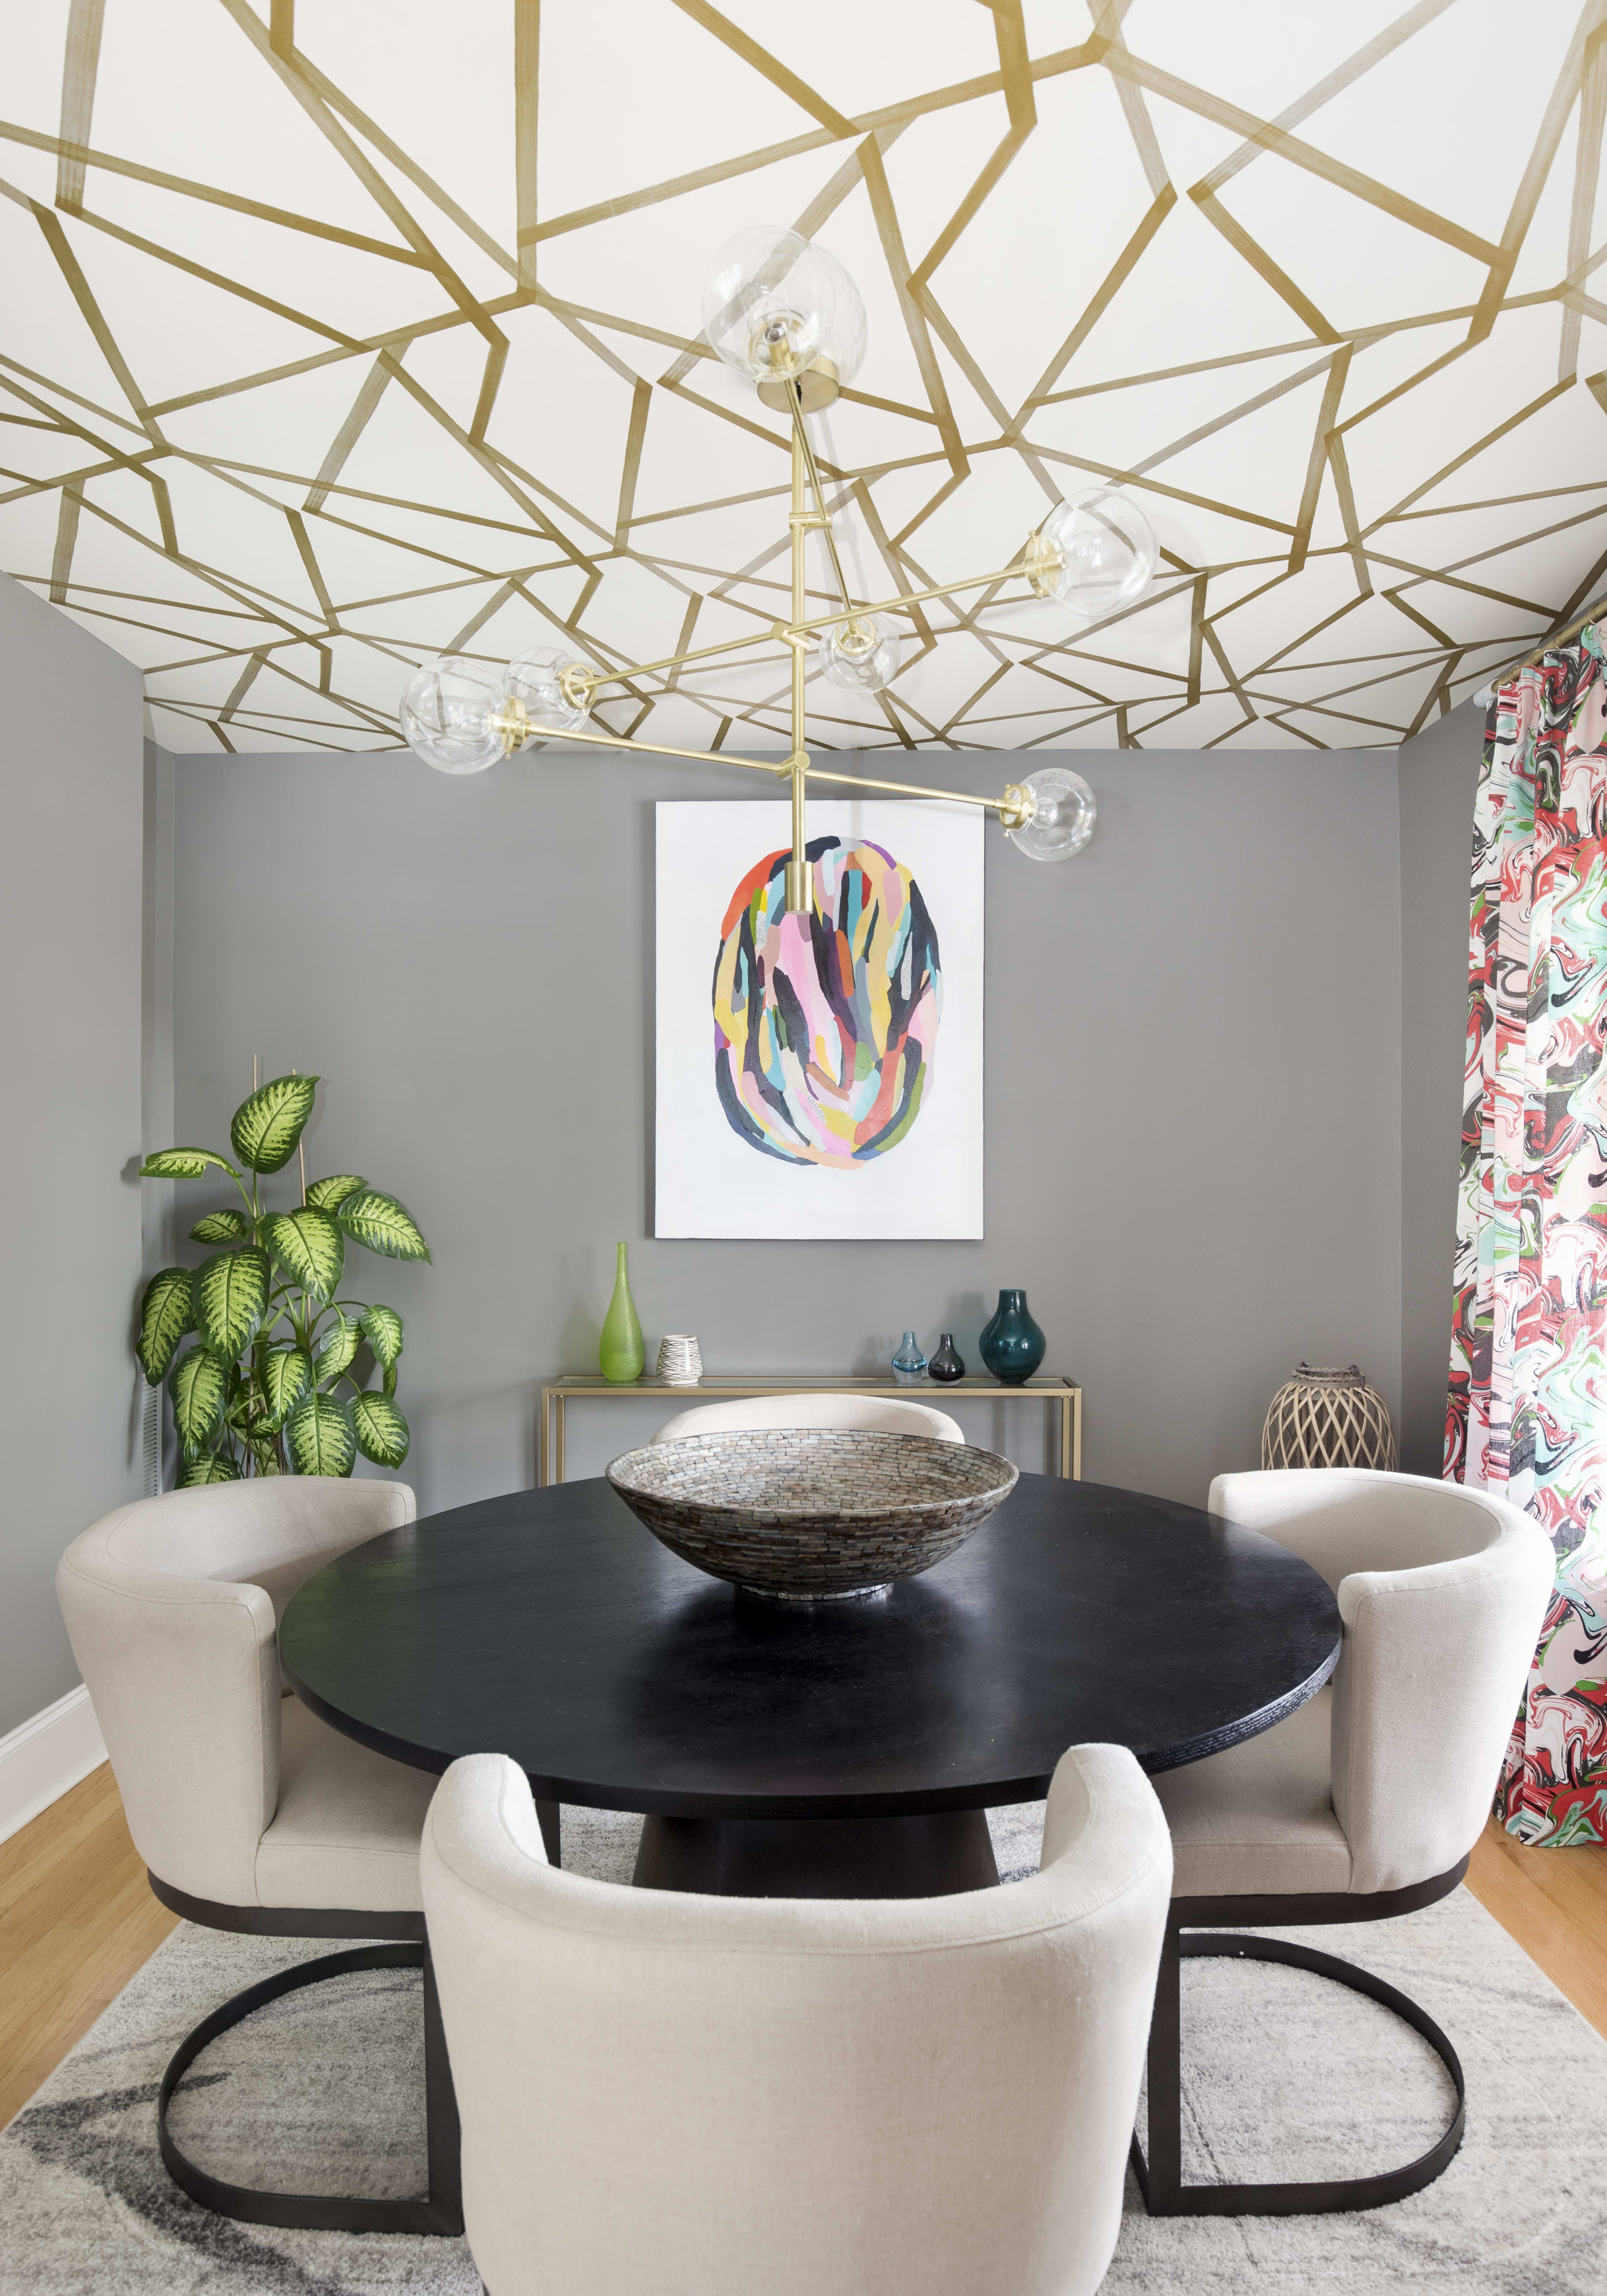 7 Wallpaper On The Ceiling Ideas To Try Now Wallpaper Cei